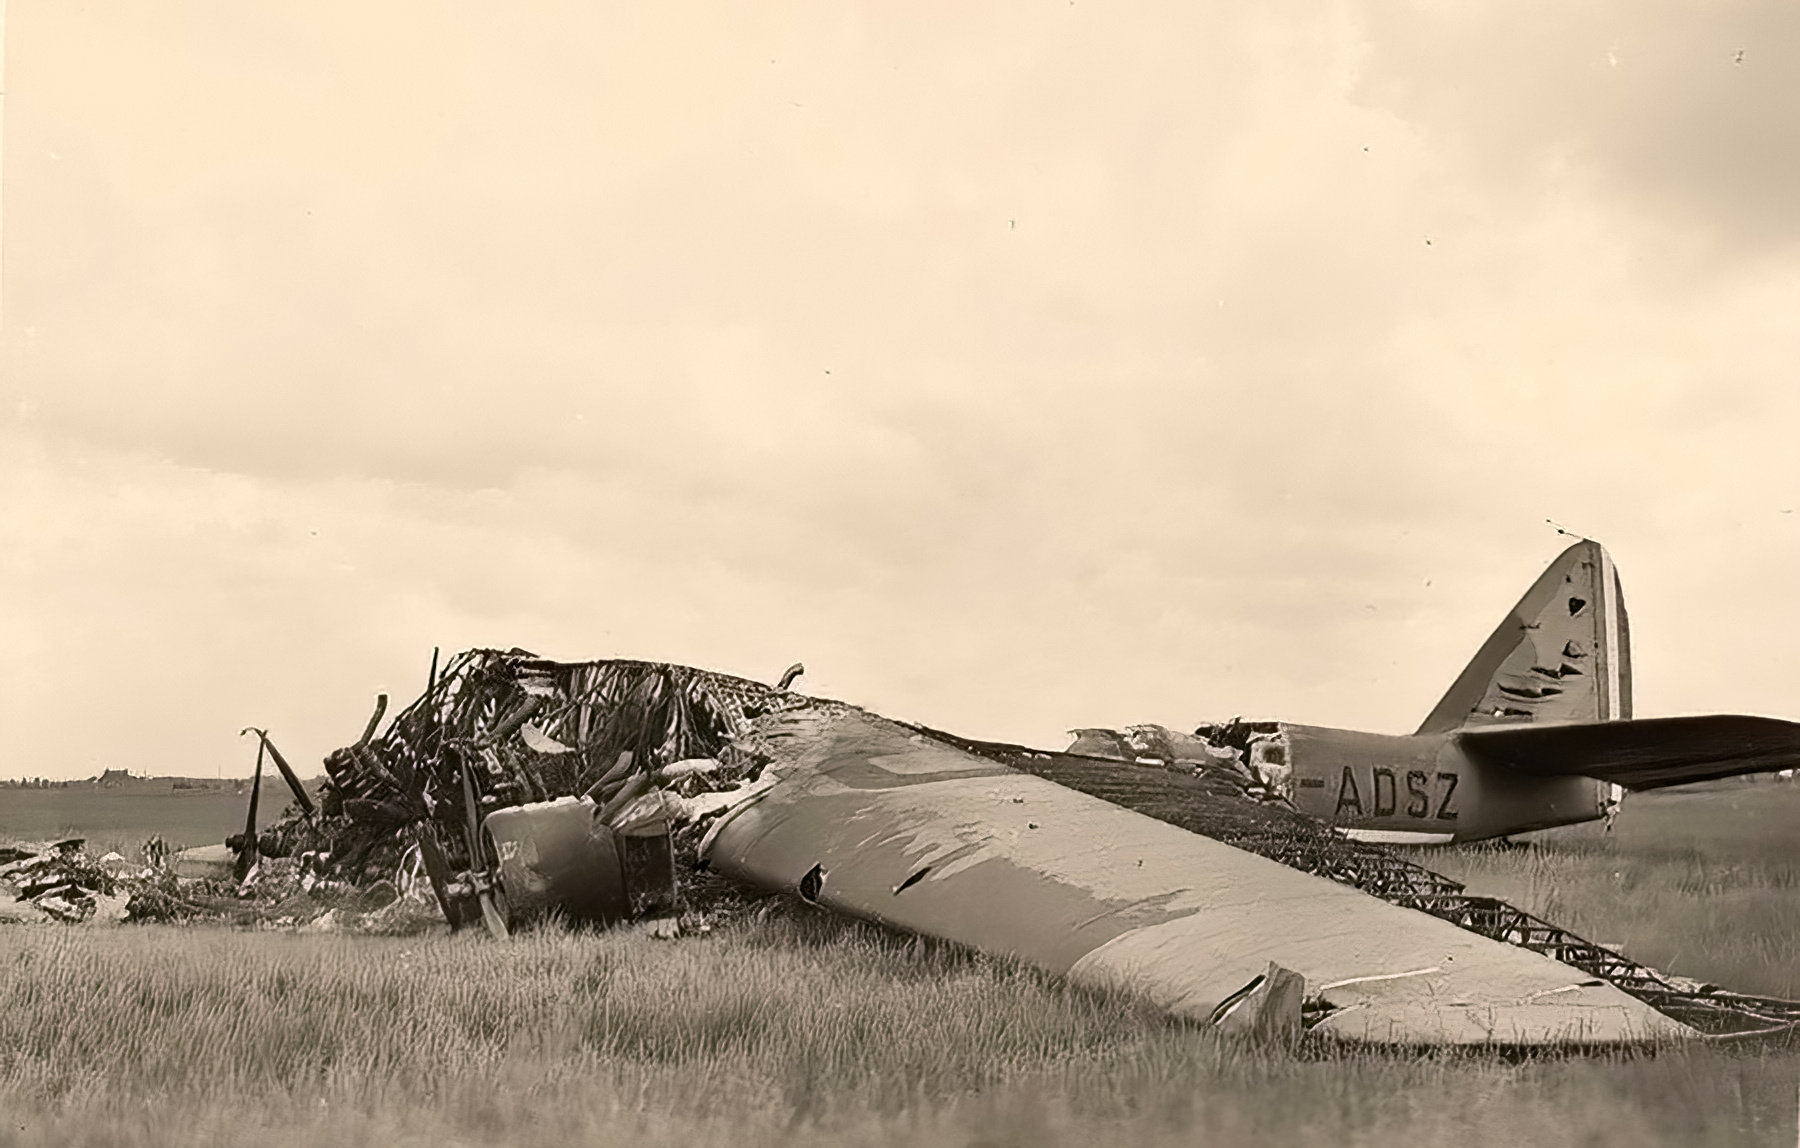 French Airforce Armstrong Whitworth Ensign G ADSZ destroyed at Merville 23rd May 1940 ebay 01